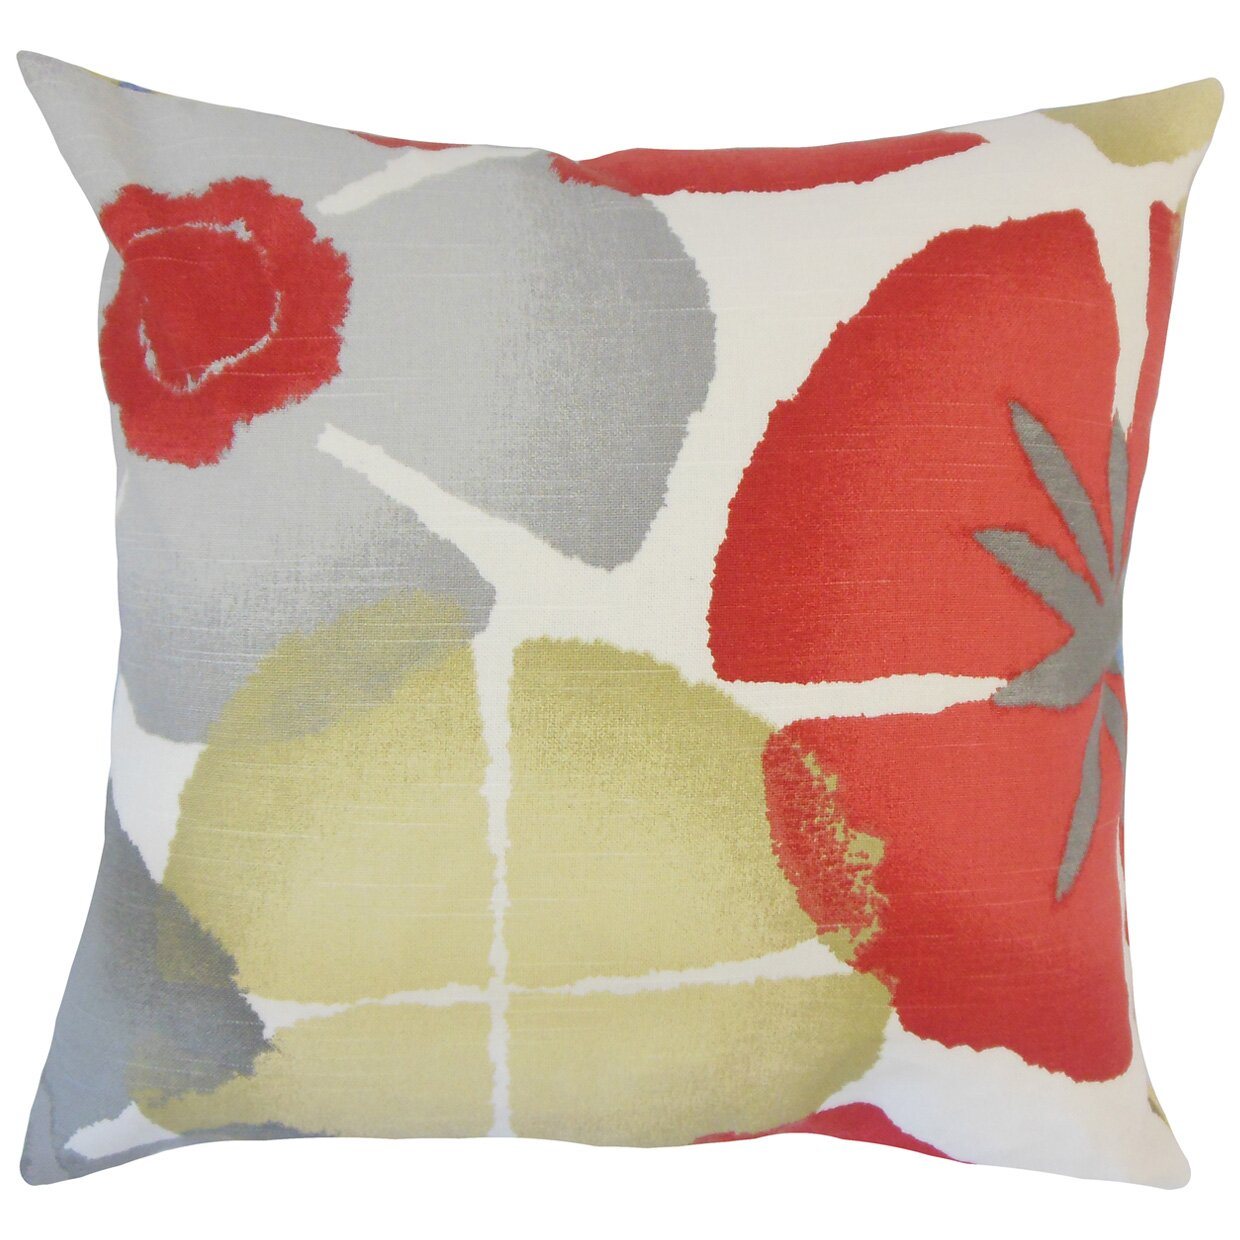 Red Barrel Studio Frierson Floral Floor Pillow Wayfair.ca